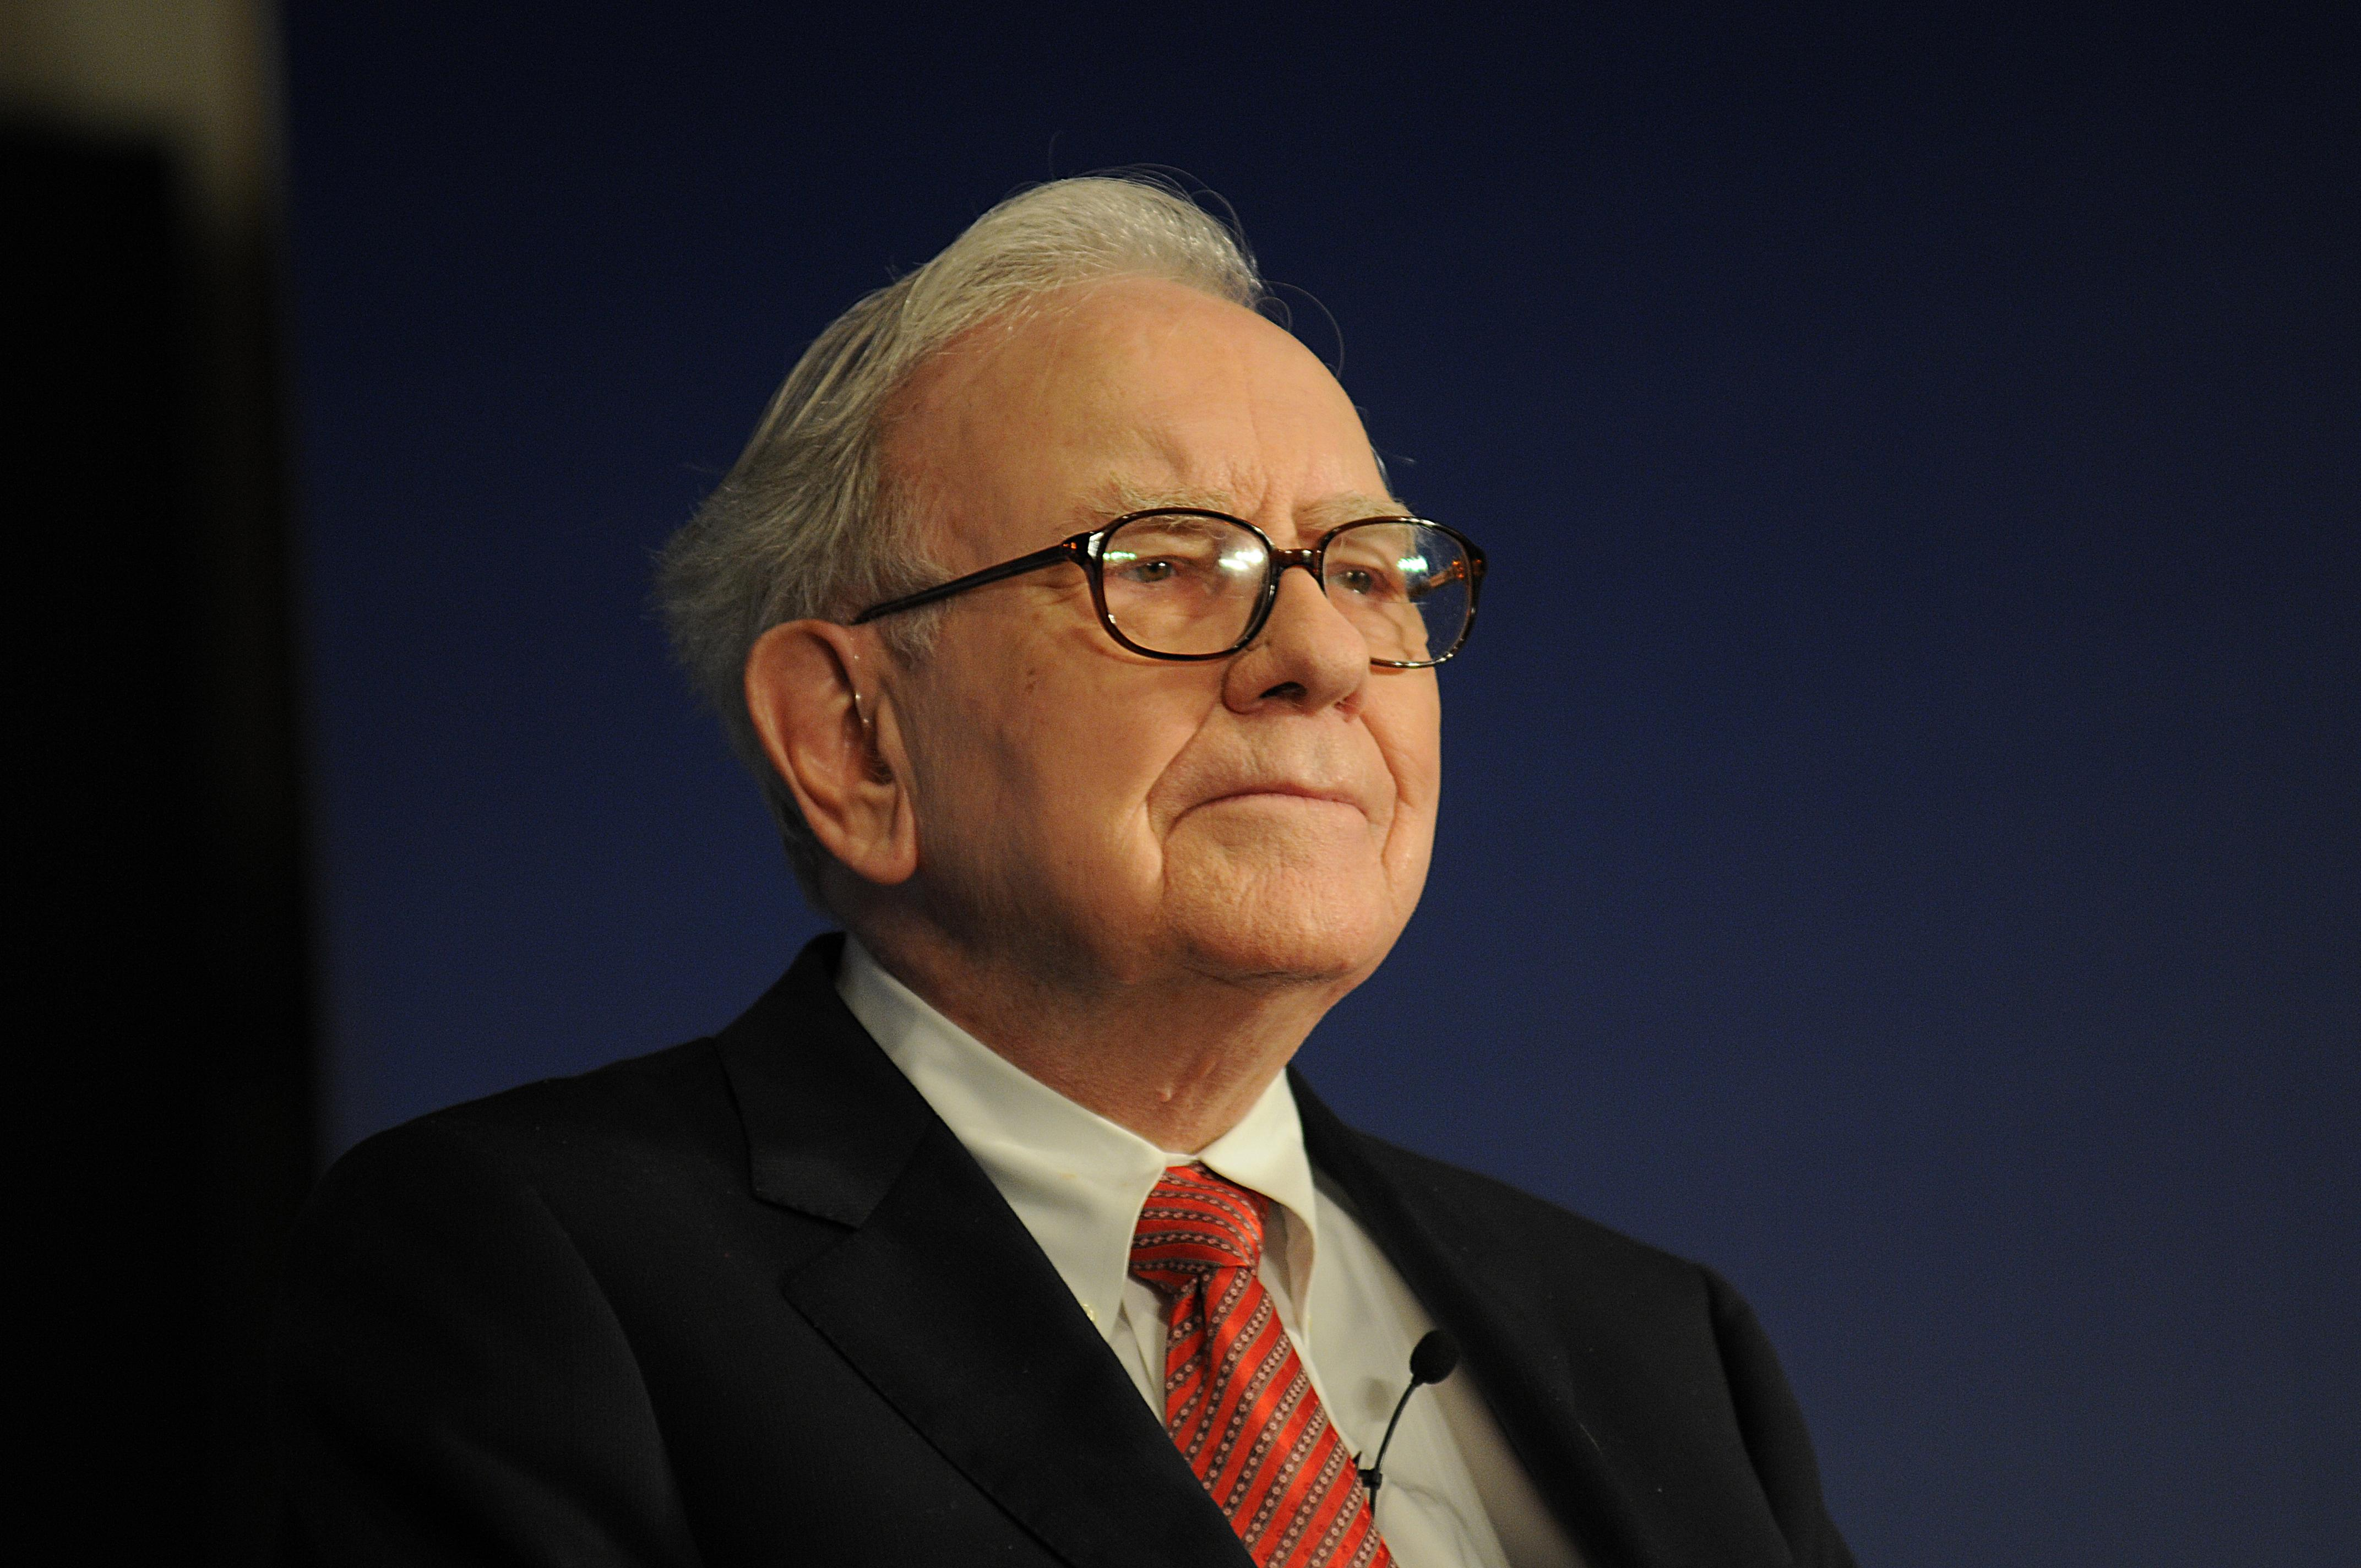 Warren Buffett muses on the difference between IQ and wisdom: 'It's interesting'